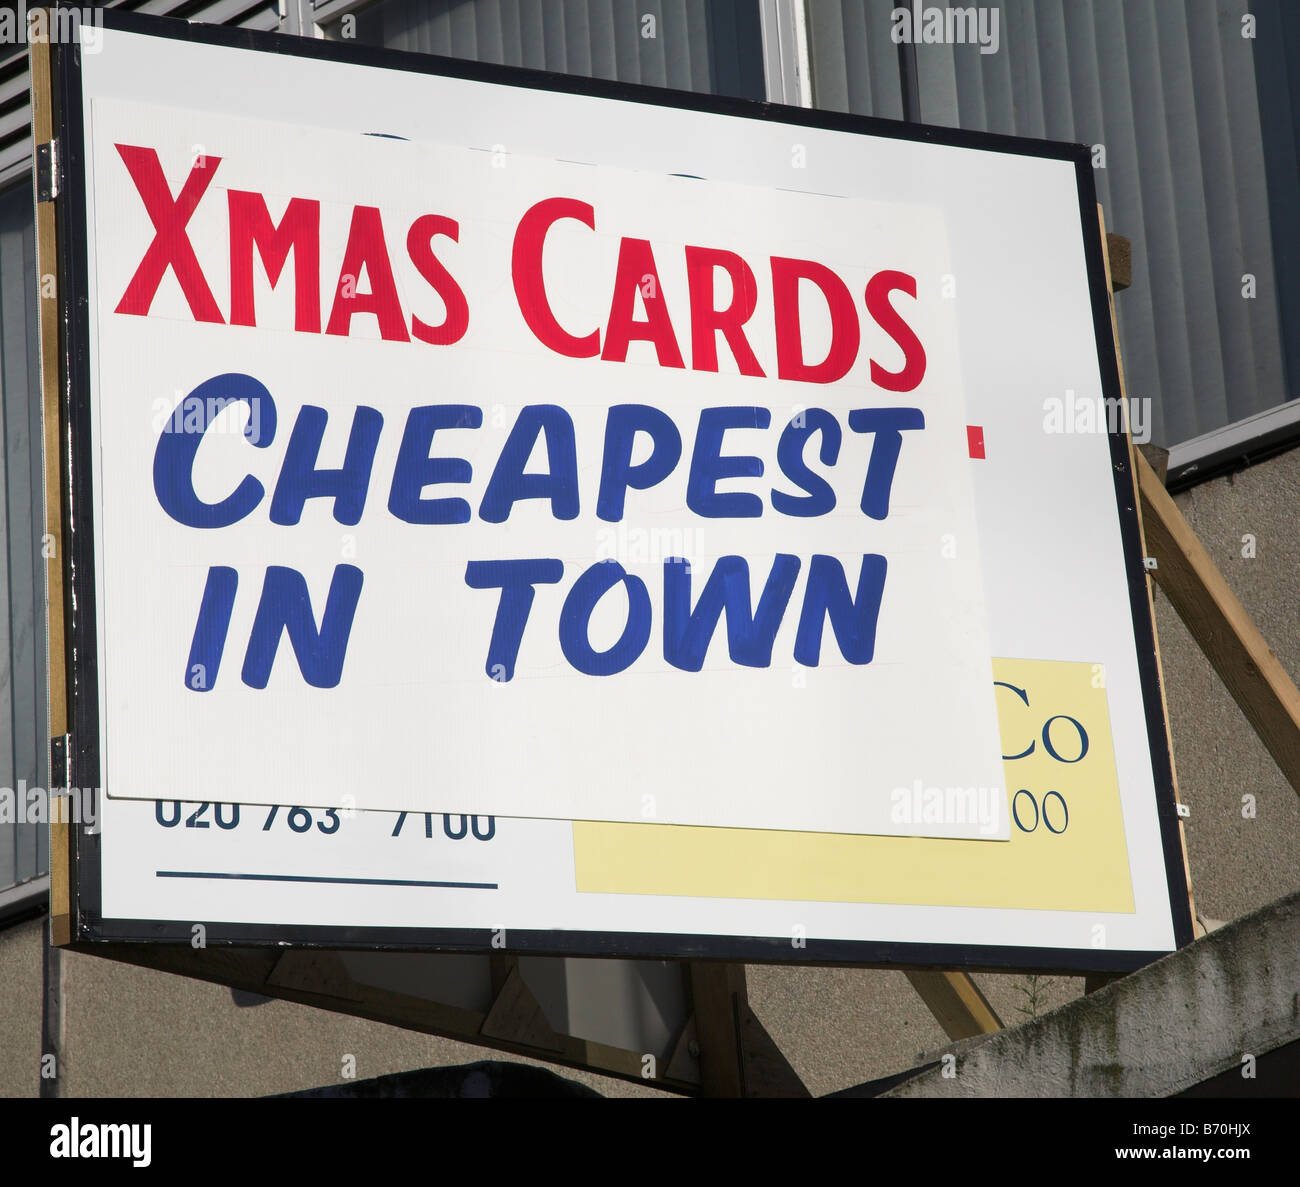 Sign advertising Christmas cards for sale Stock Photo: 21526818 - Alamy